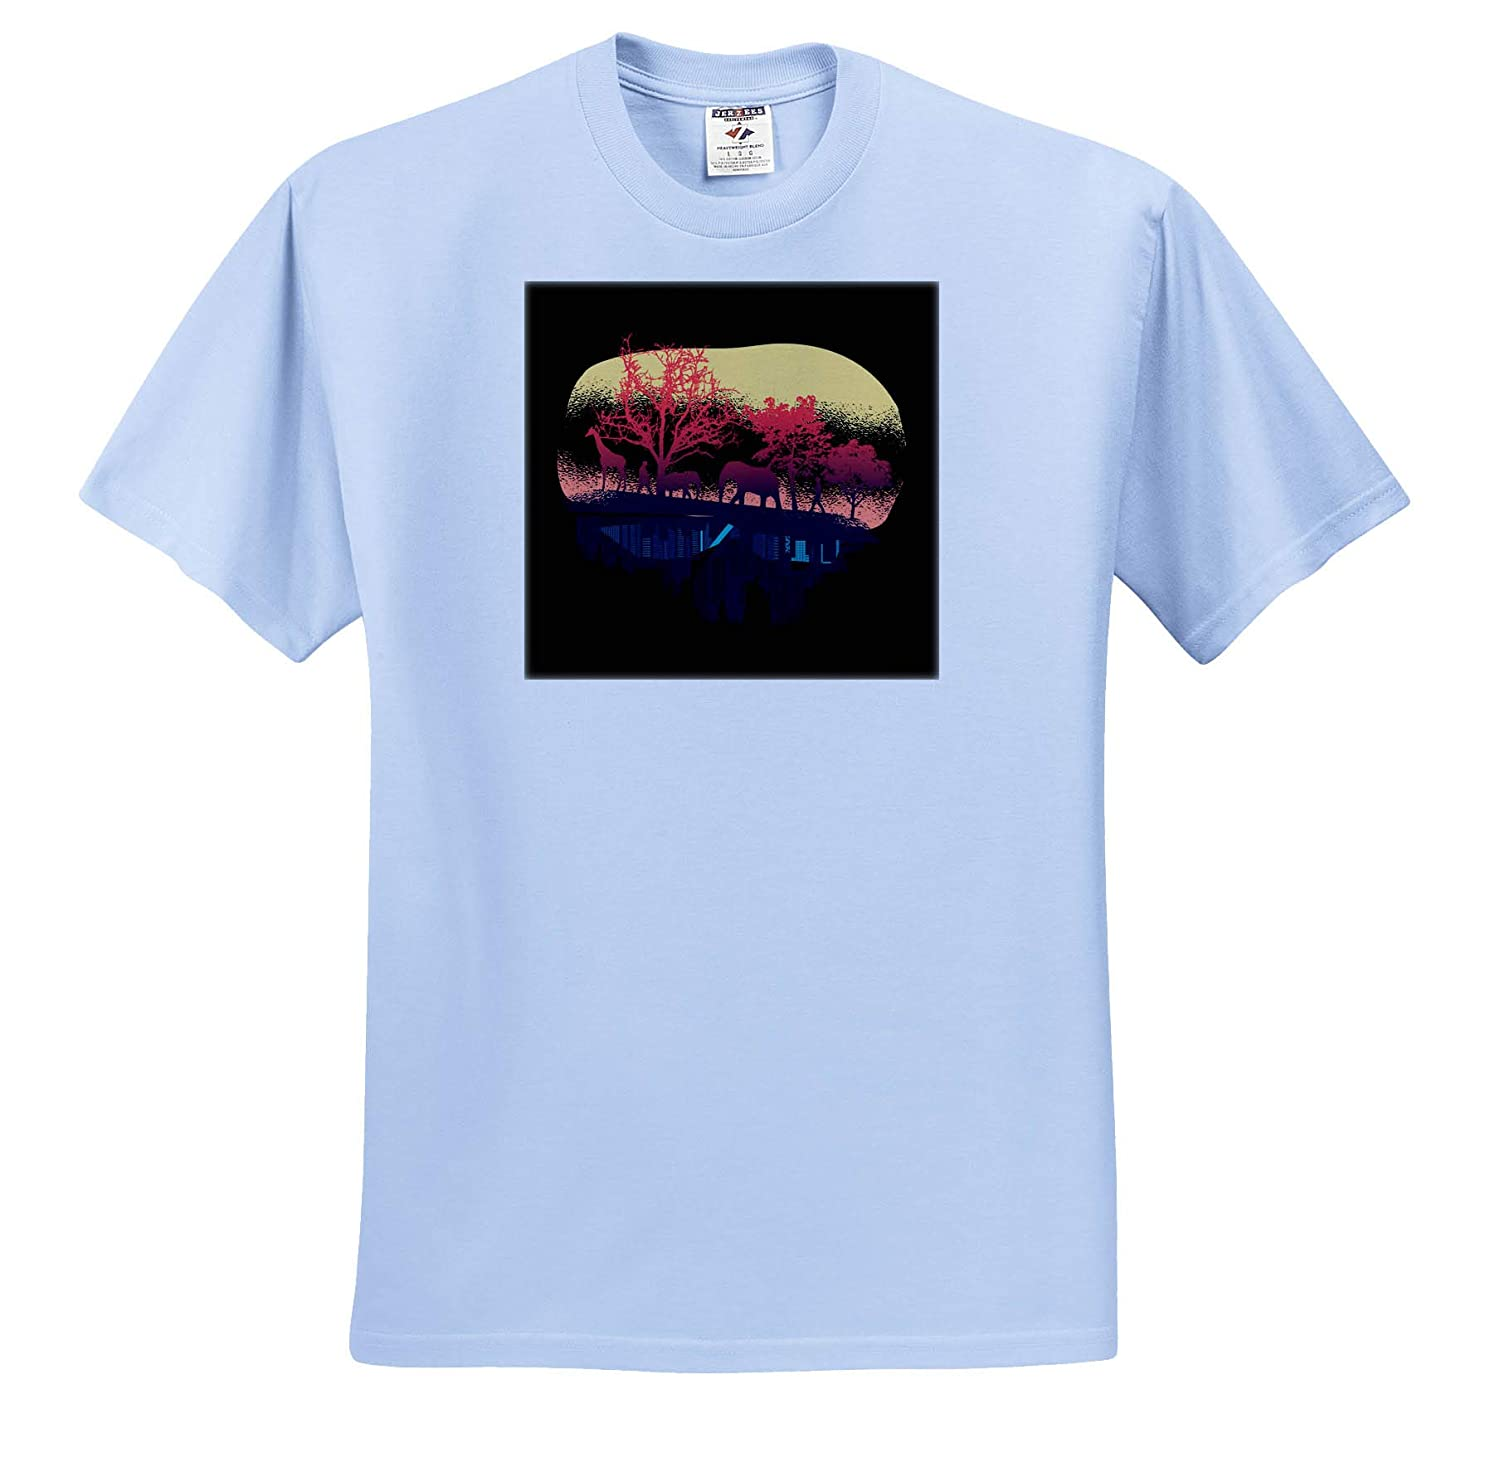 3dRose Sven Herkenrath Nature Forest Art with Giraffe Elephant and City Country T-Shirts